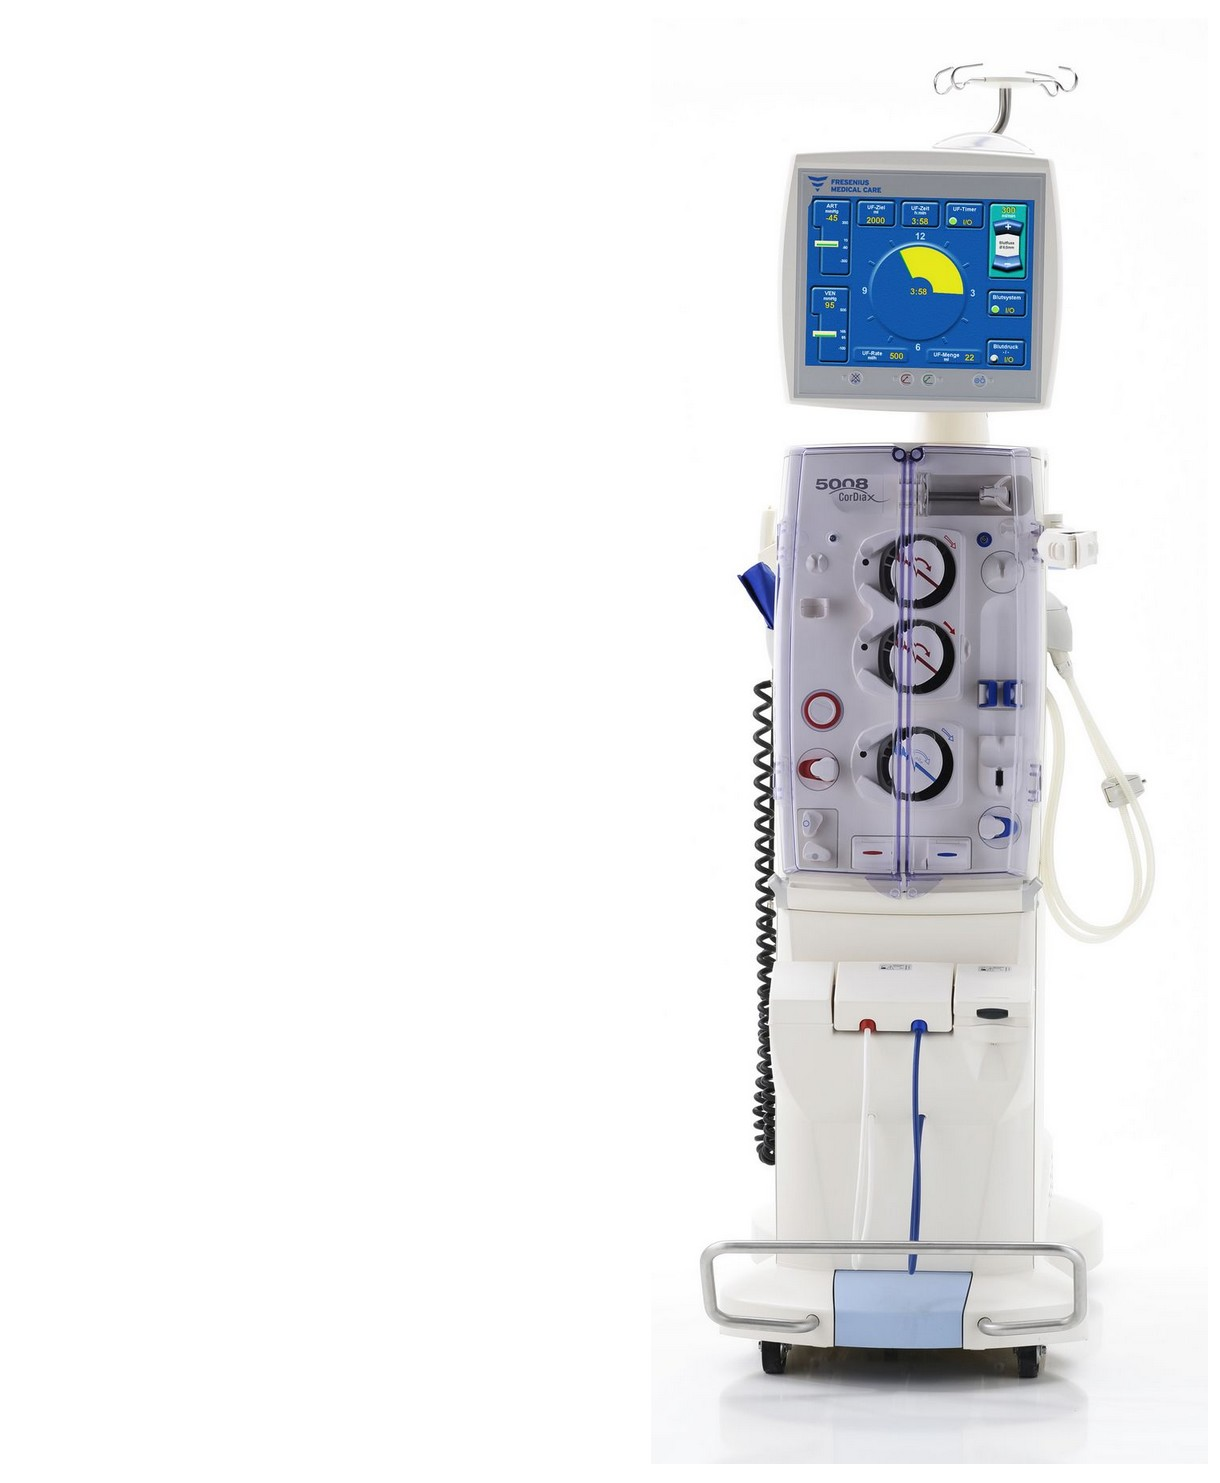 home hemodialysis Home hemodialysis is an option that allows you the flexibility to complete your hemodialysis treatments in the comfort of your home.